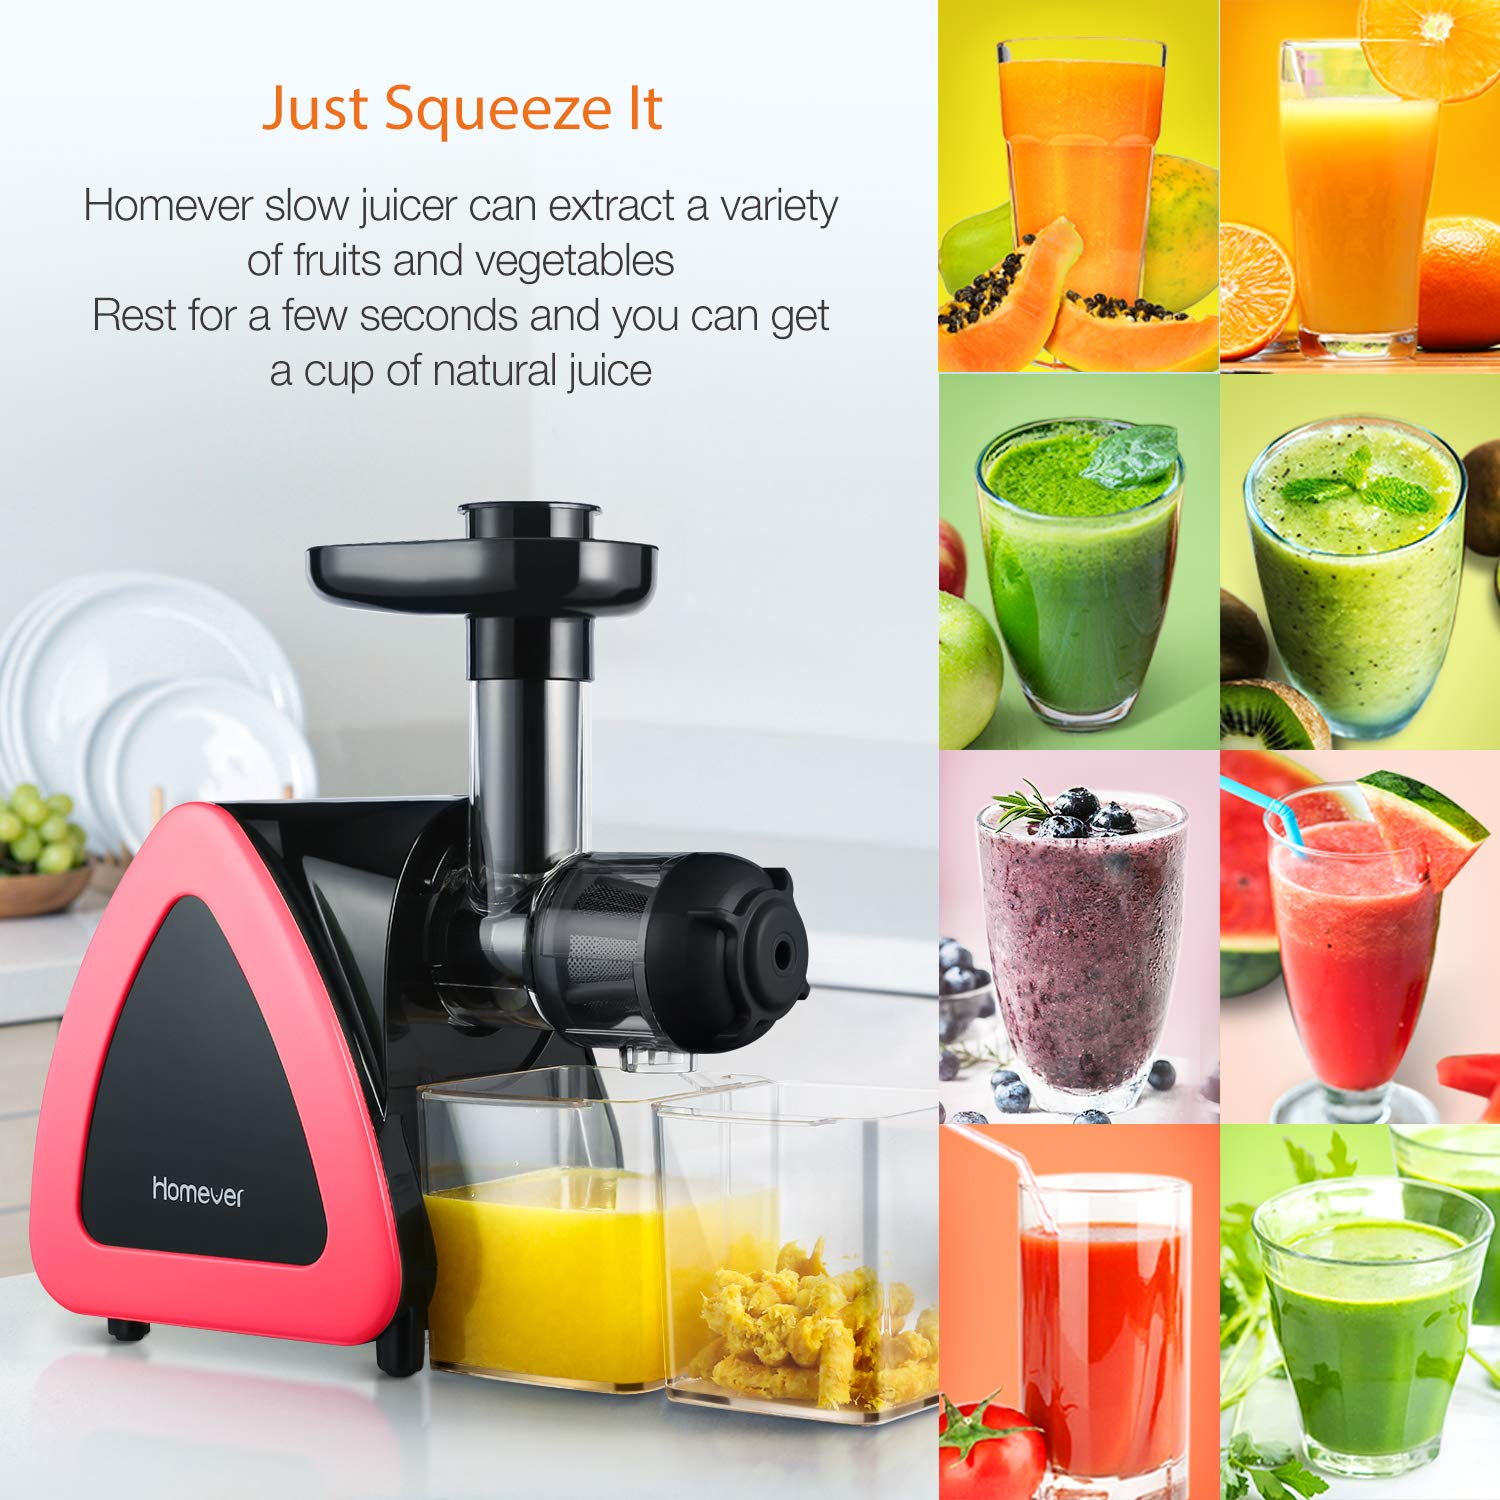 Homever Juicer Machines, Slow Masticating Juicer for Fruits and Vegetables, Quiet Motor, Reverse Function, Easy to Clean Hight Nutrient Cold Press Juicer Machine with Juice Cup & Brush, BPA-Free by Homever (Image #7)